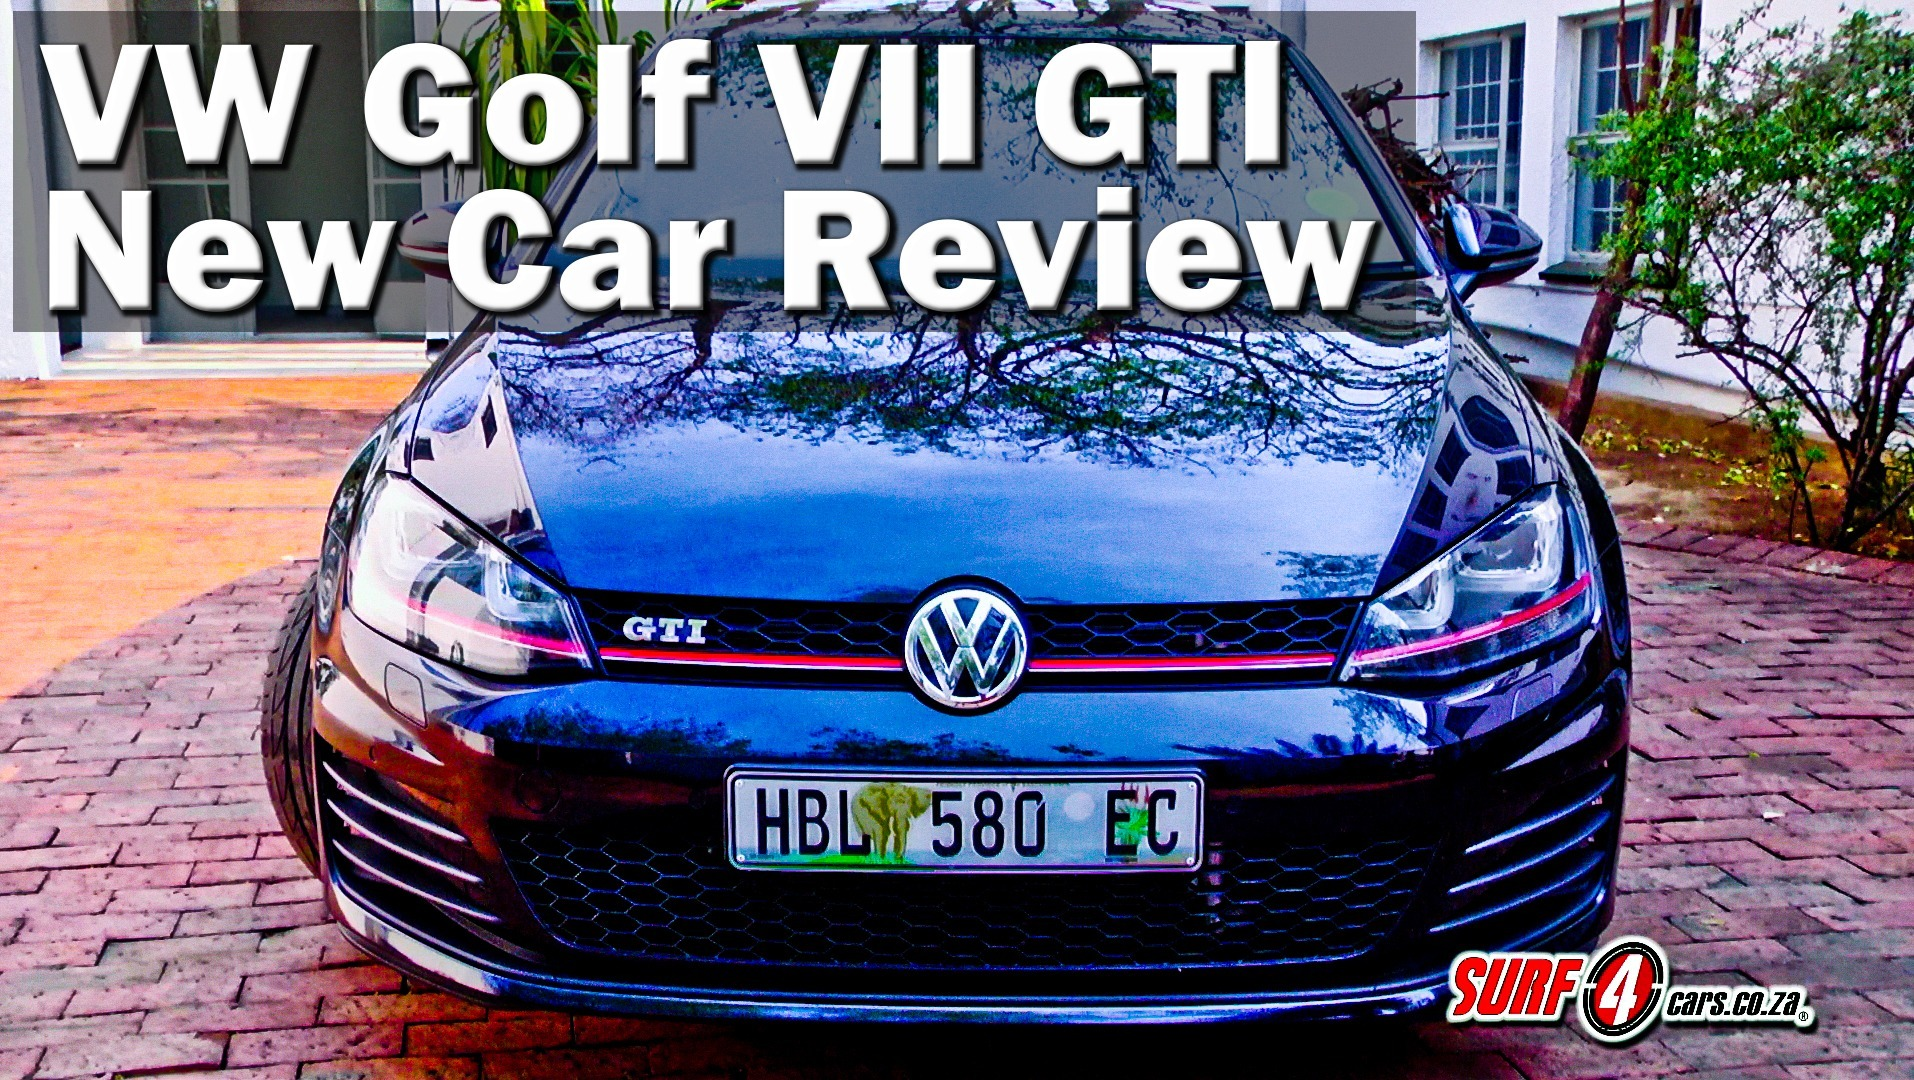 Volkswagen Golf 7 GTI (2013): Video Review – Surf4cars